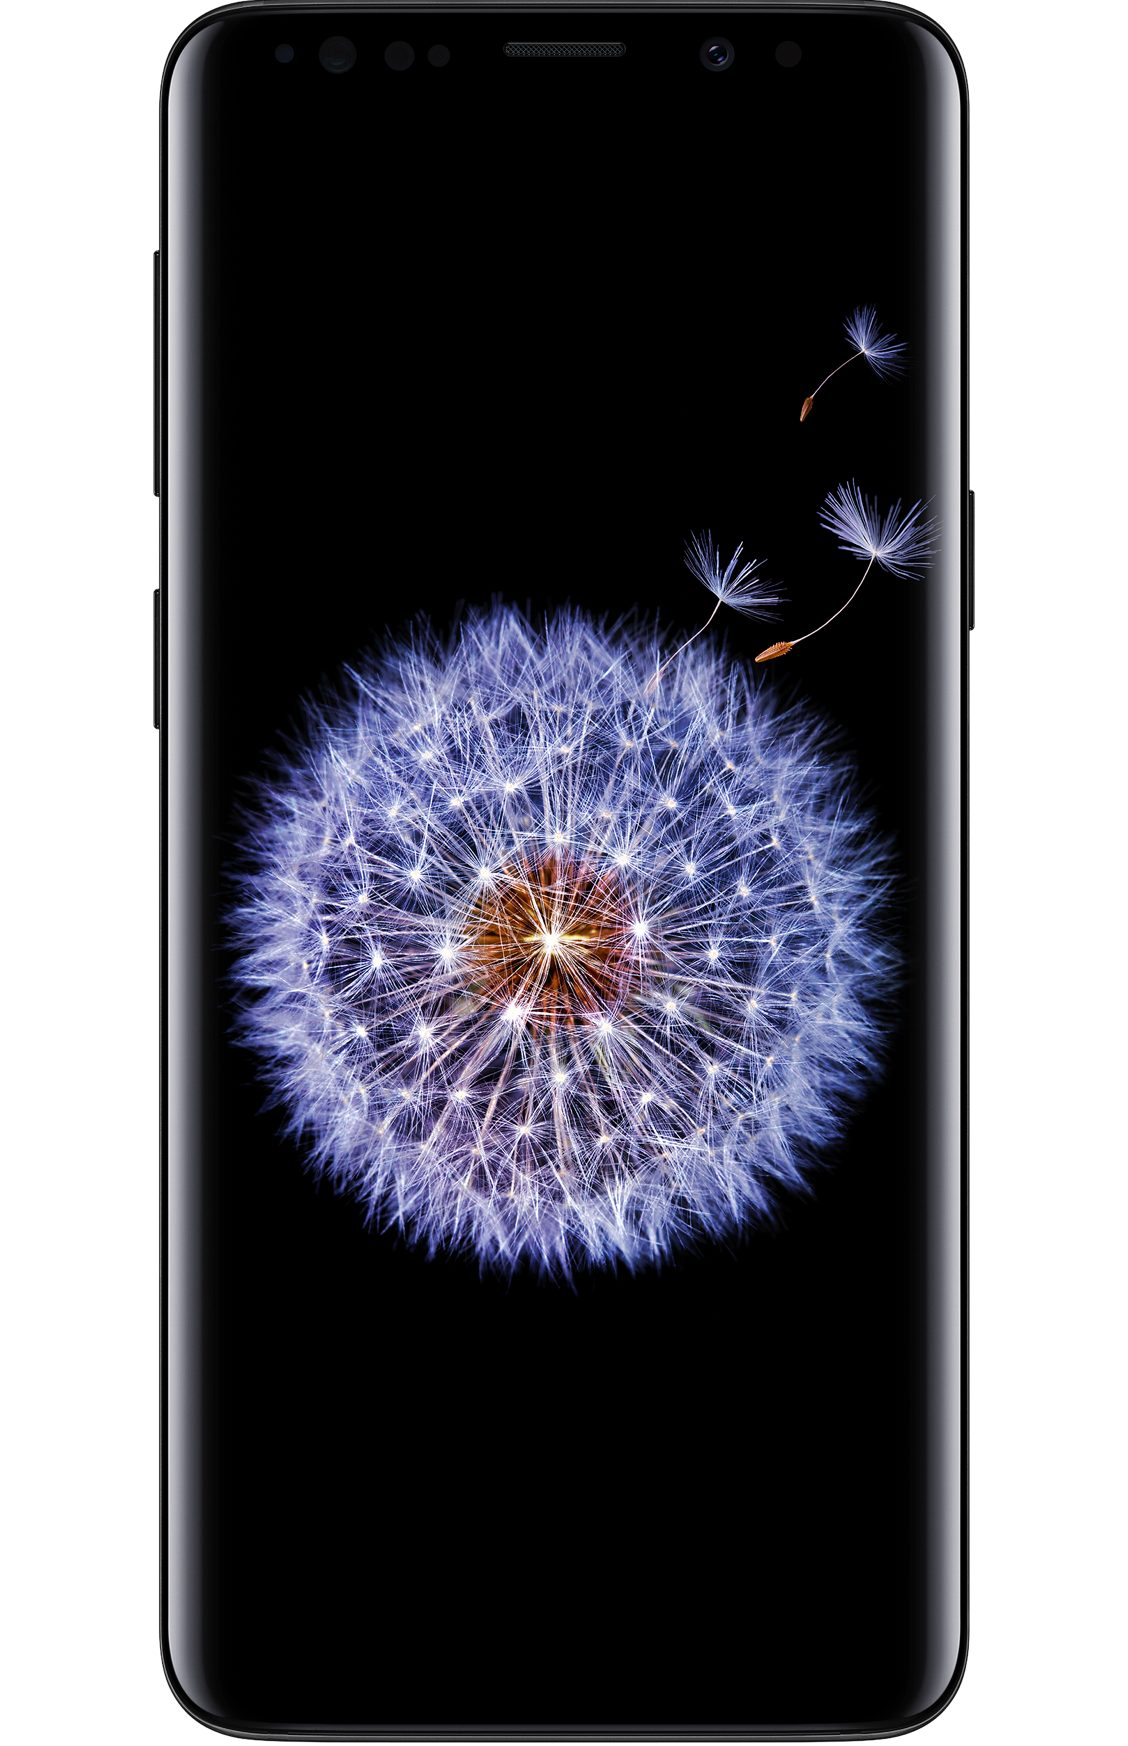 Save $50 on Samsung Galaxy S9